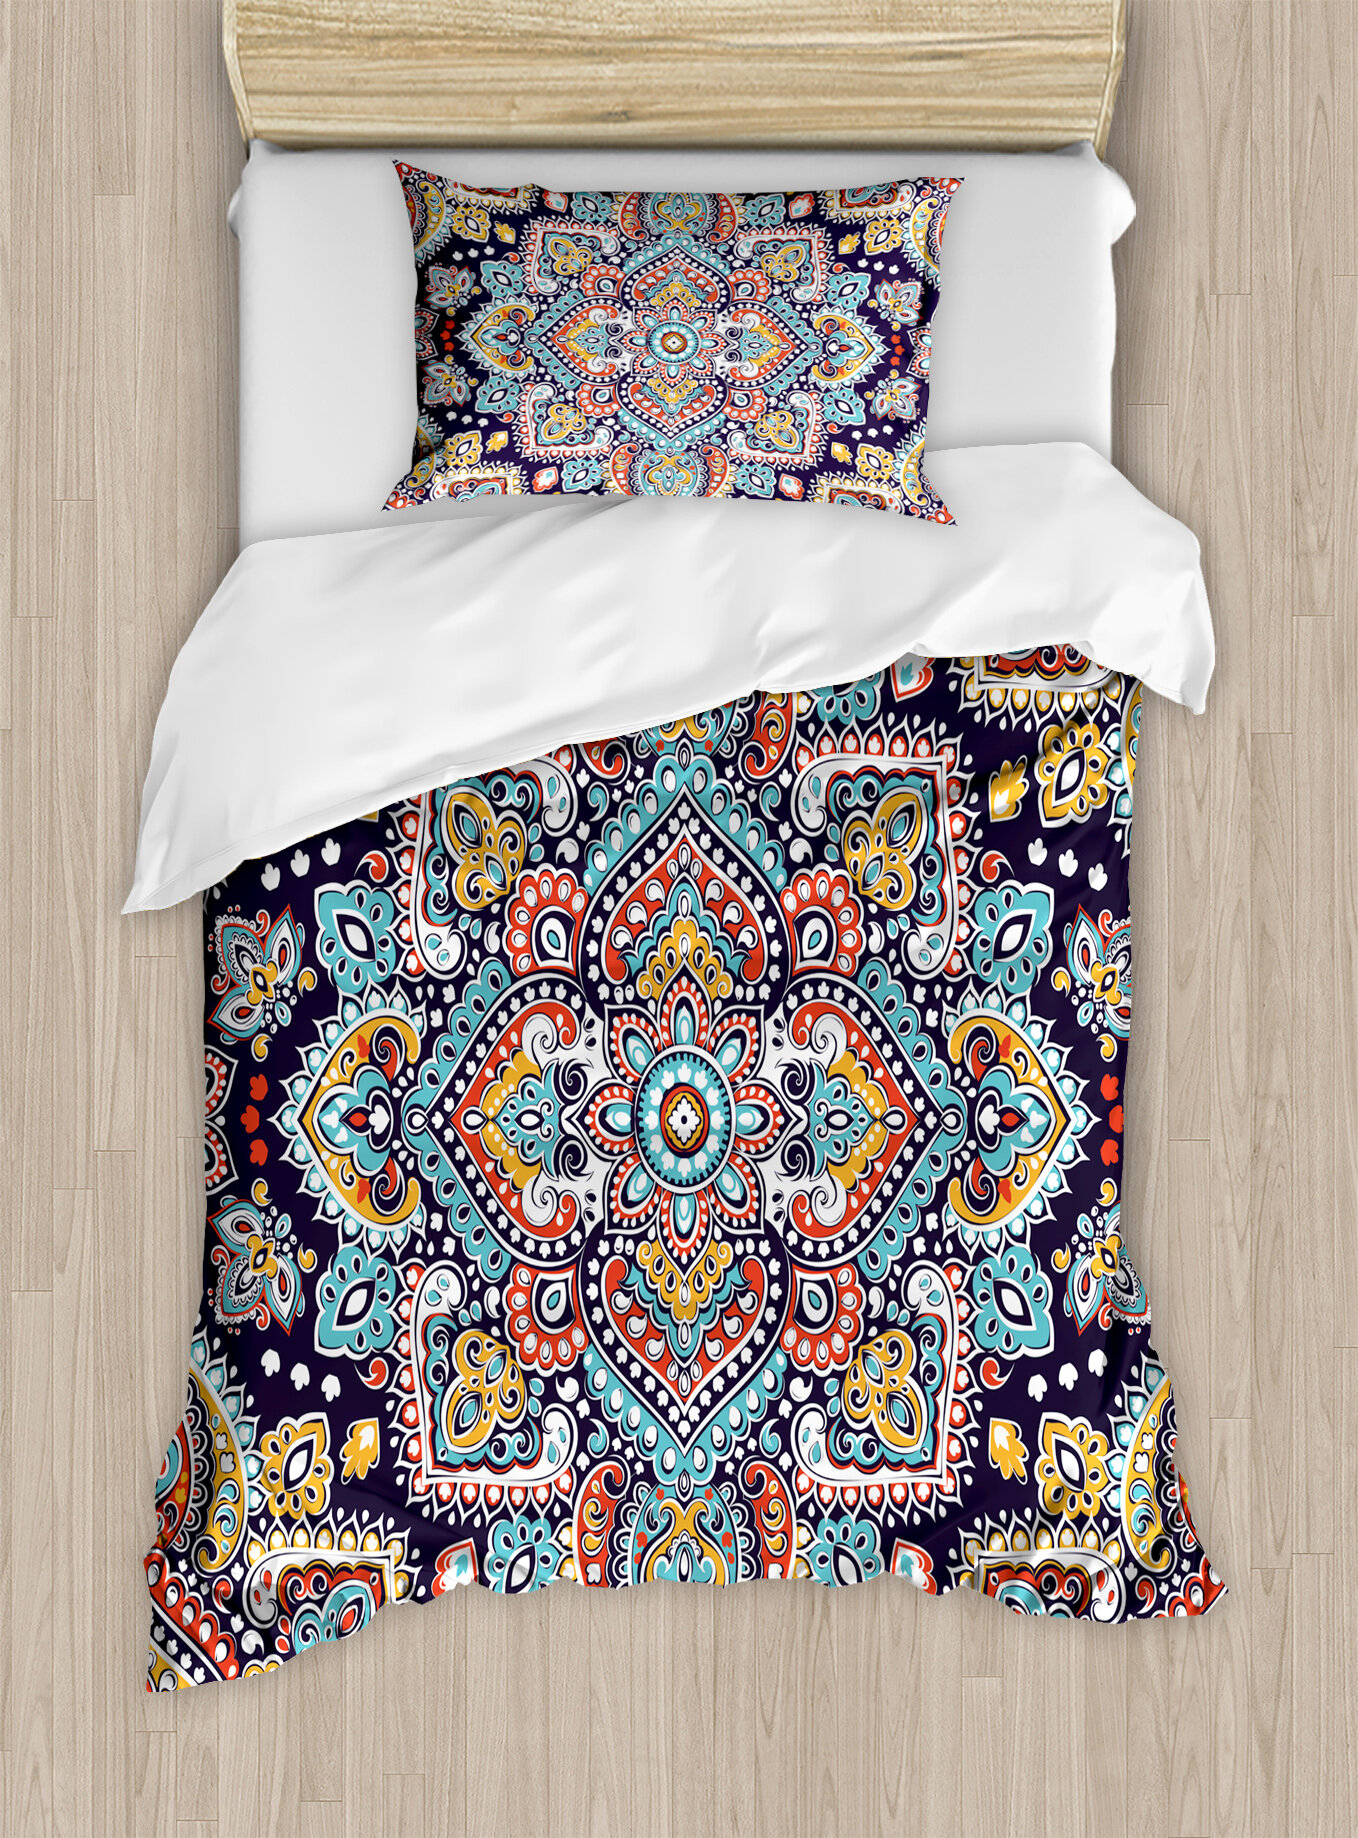 bedspreads excellent boho king with quilts in quilt bohemian comforters gypsy coverlet bed set design comforter style bedroom dorm decorative bag hippie best a bohem bedding